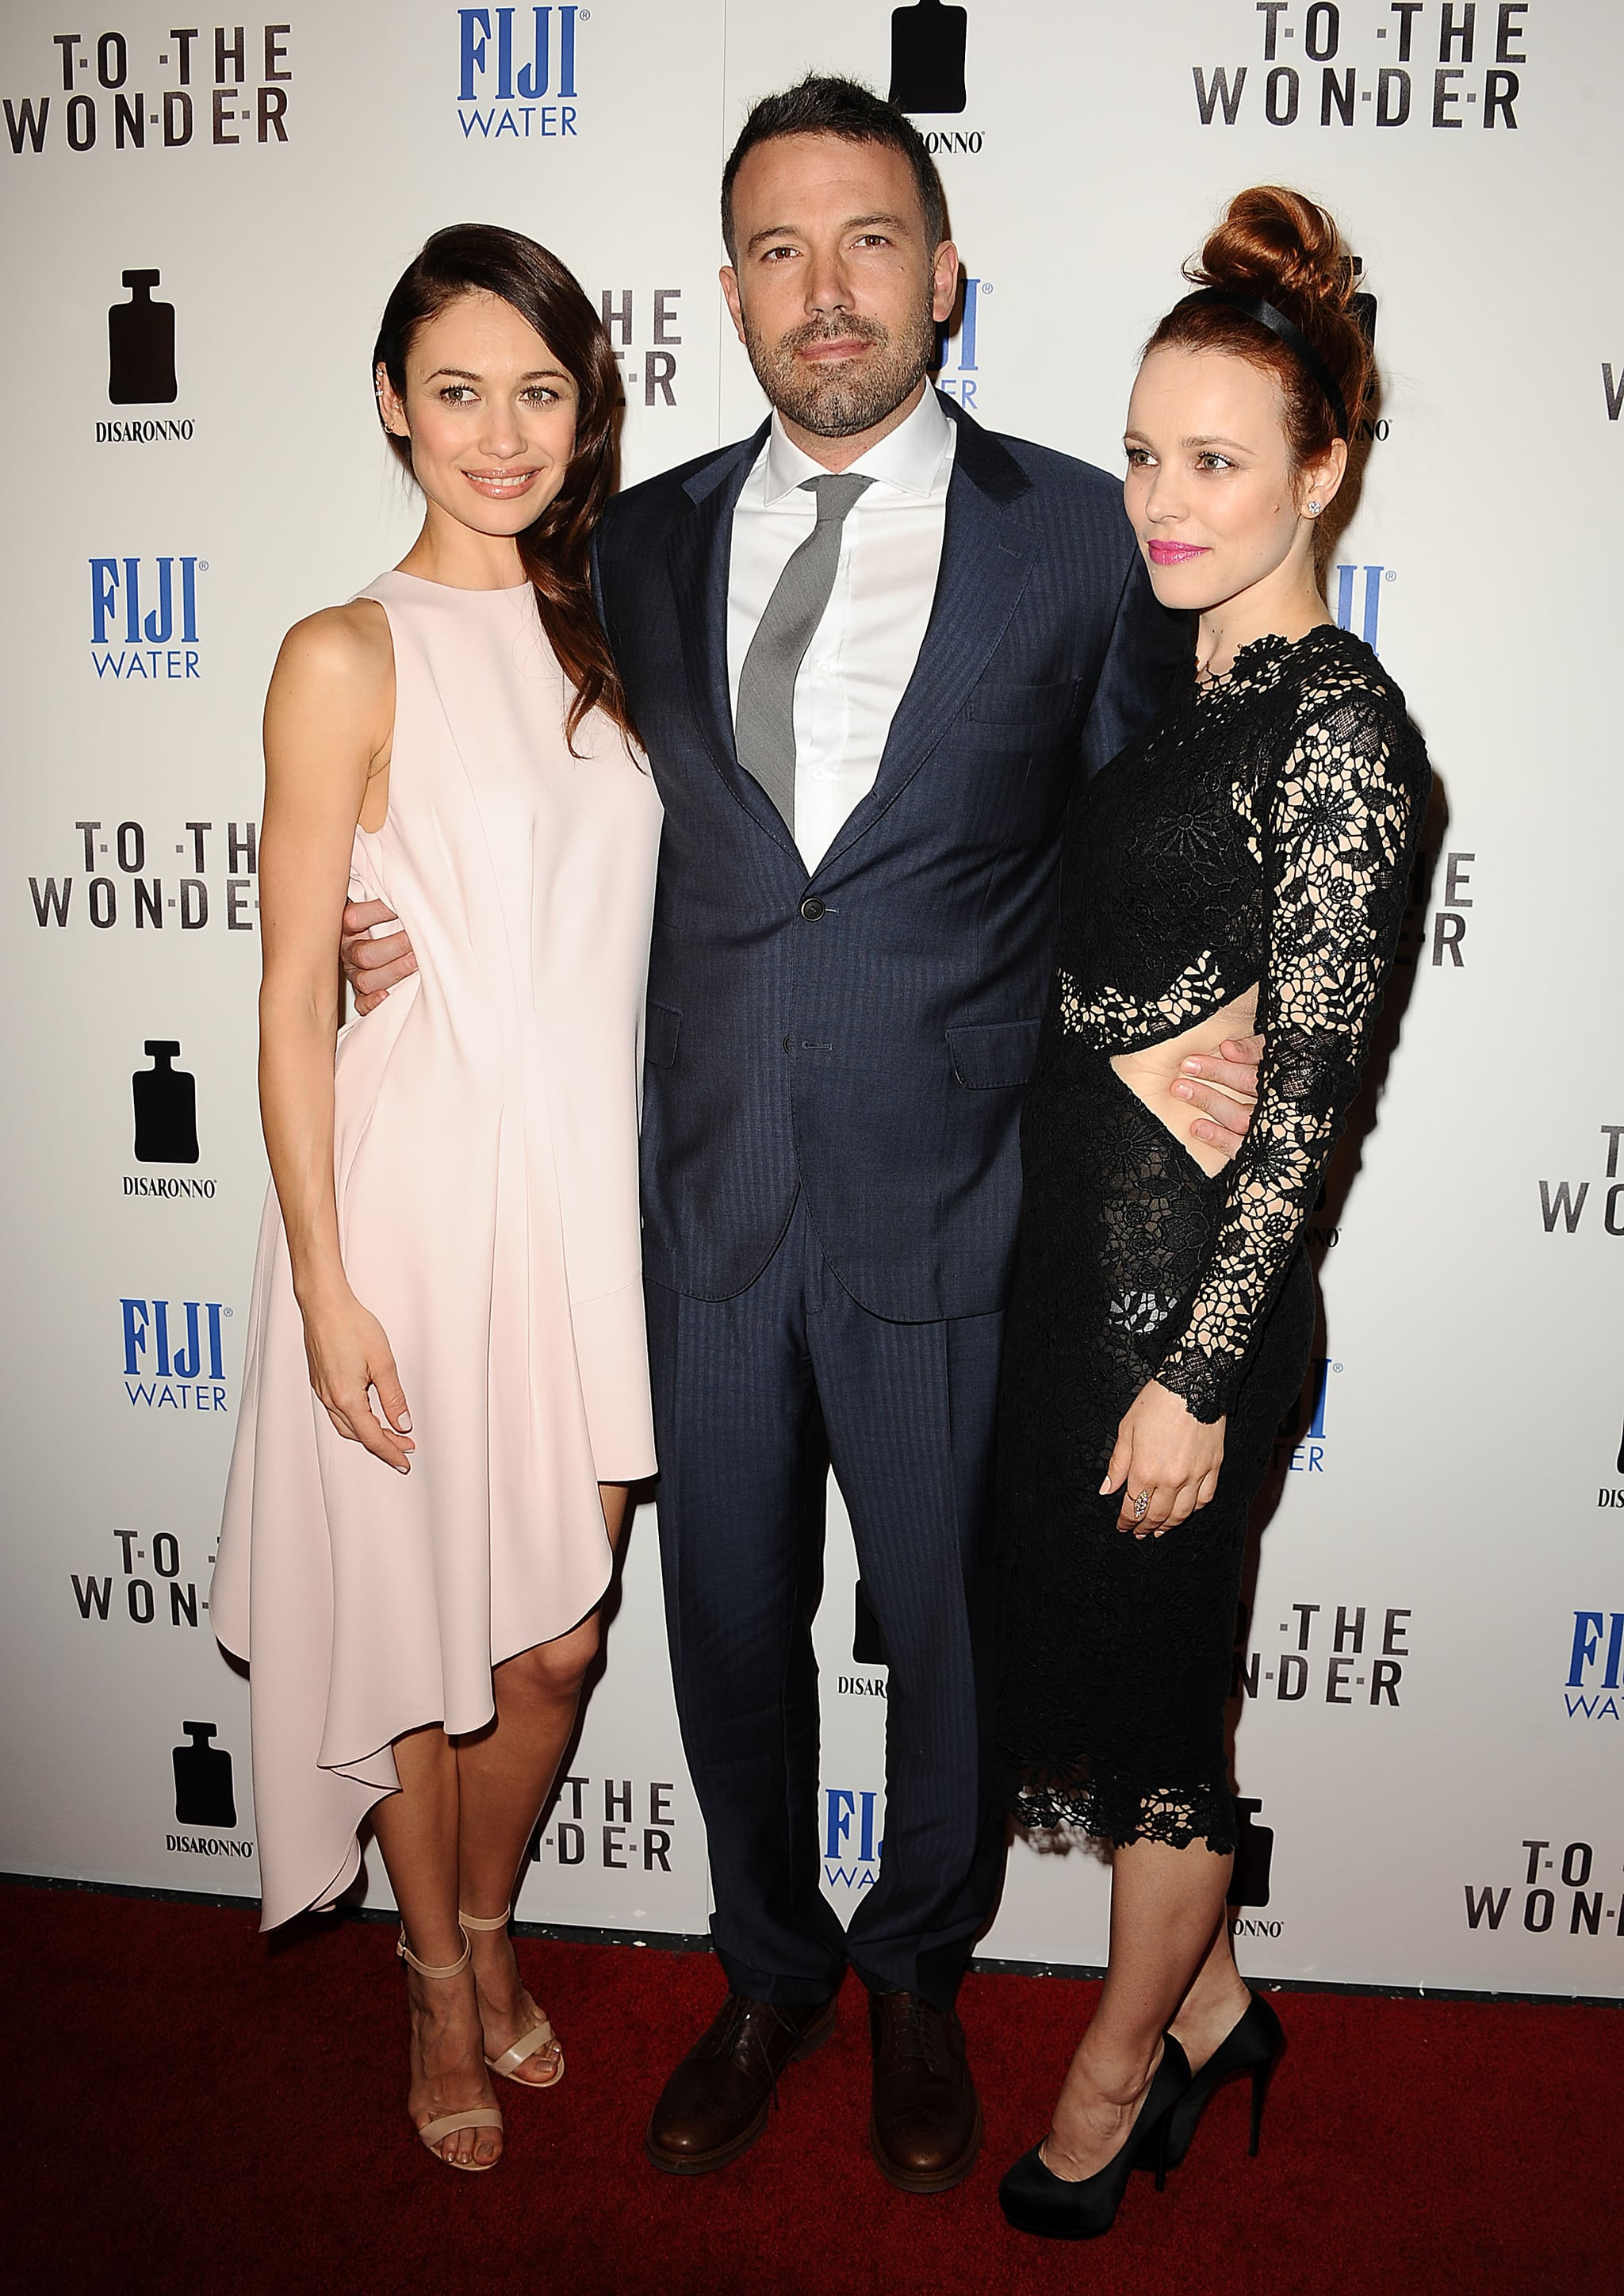 Rachel McAdams, Ben Affleck, and Olga Kurylenko posed together at the event, sponsored by DISARONNO and FIJI Water.